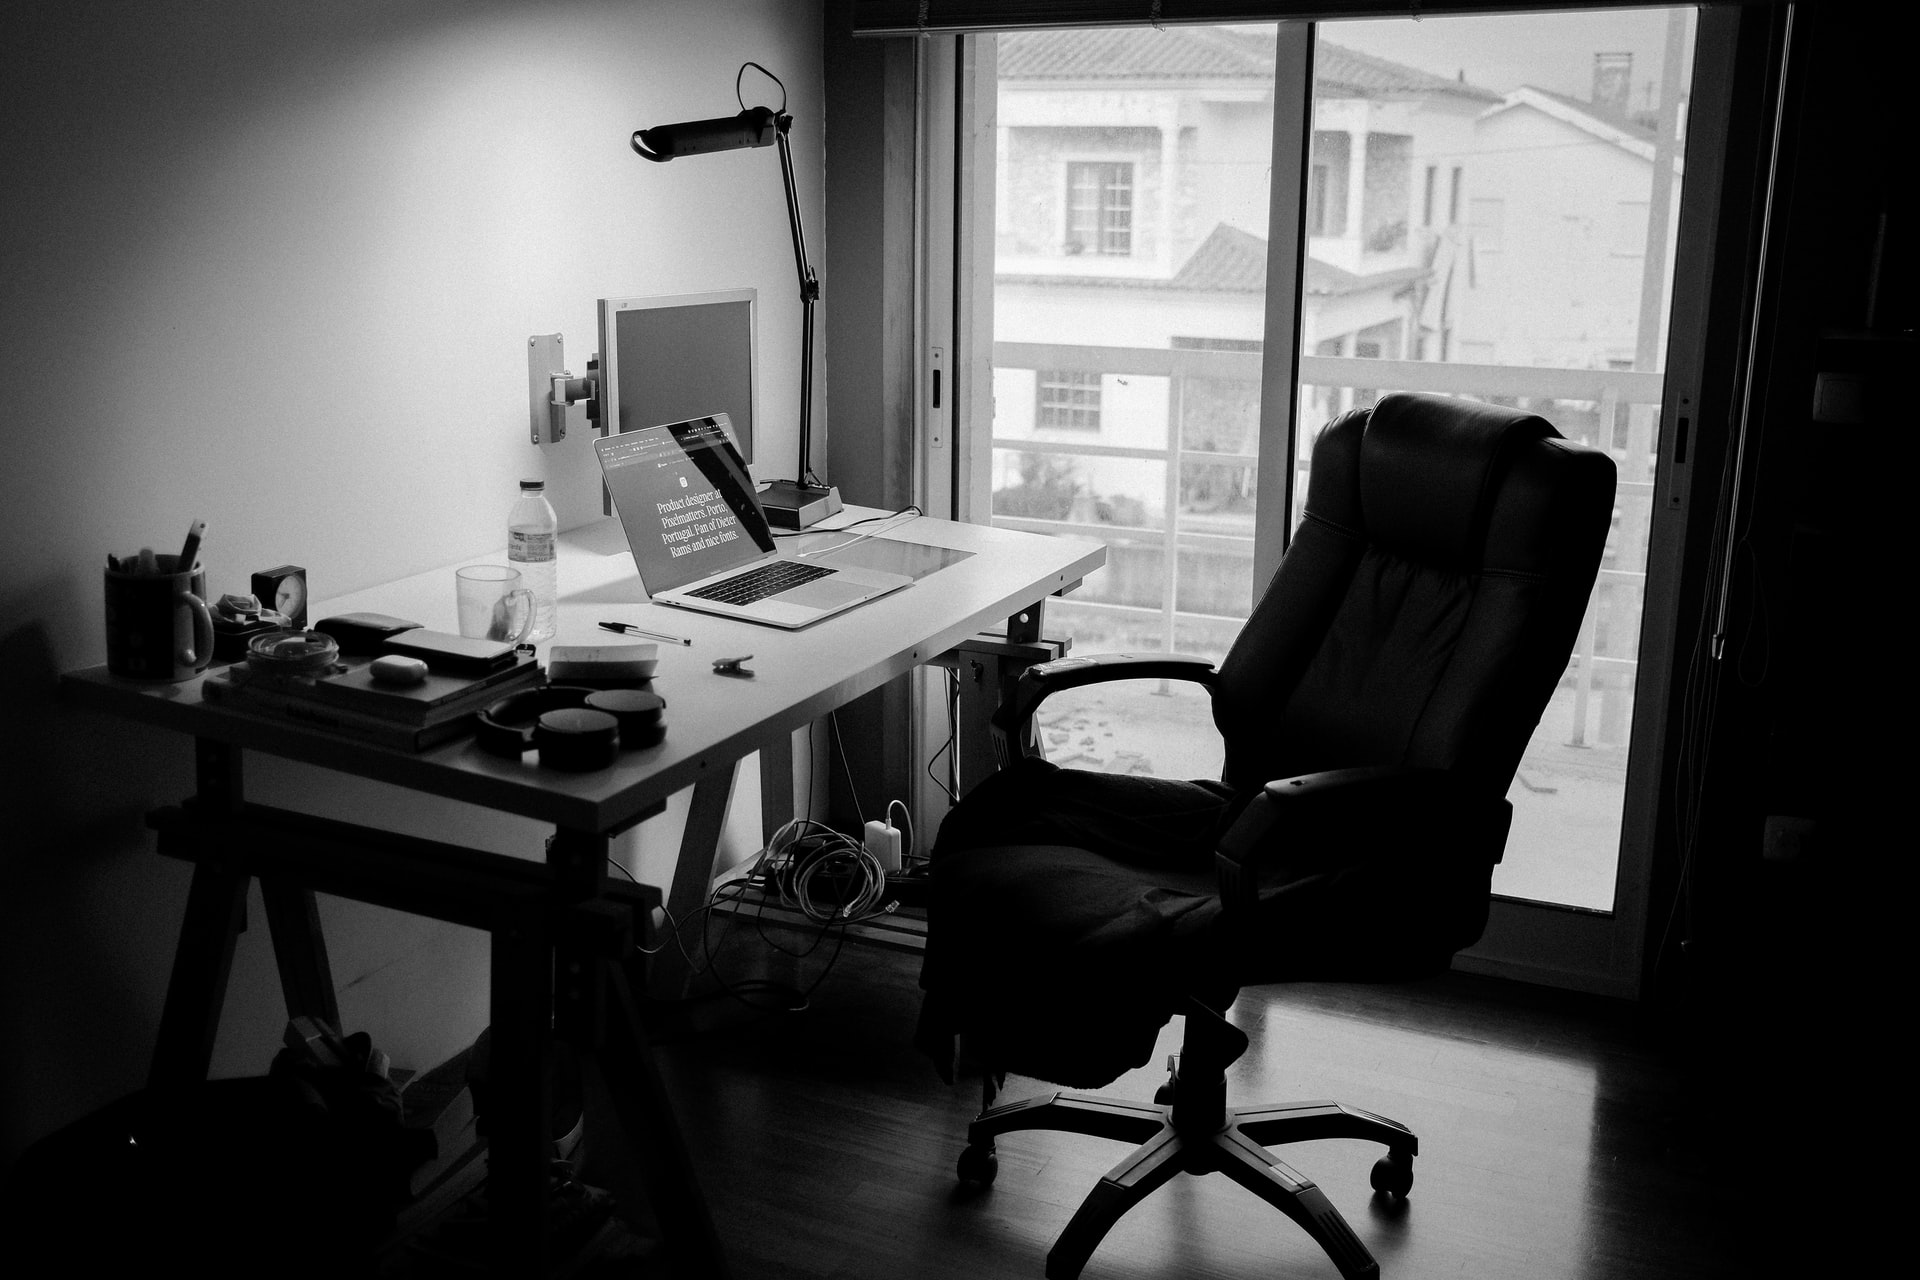 Tips to Keep Work Data Safe When Working from Home